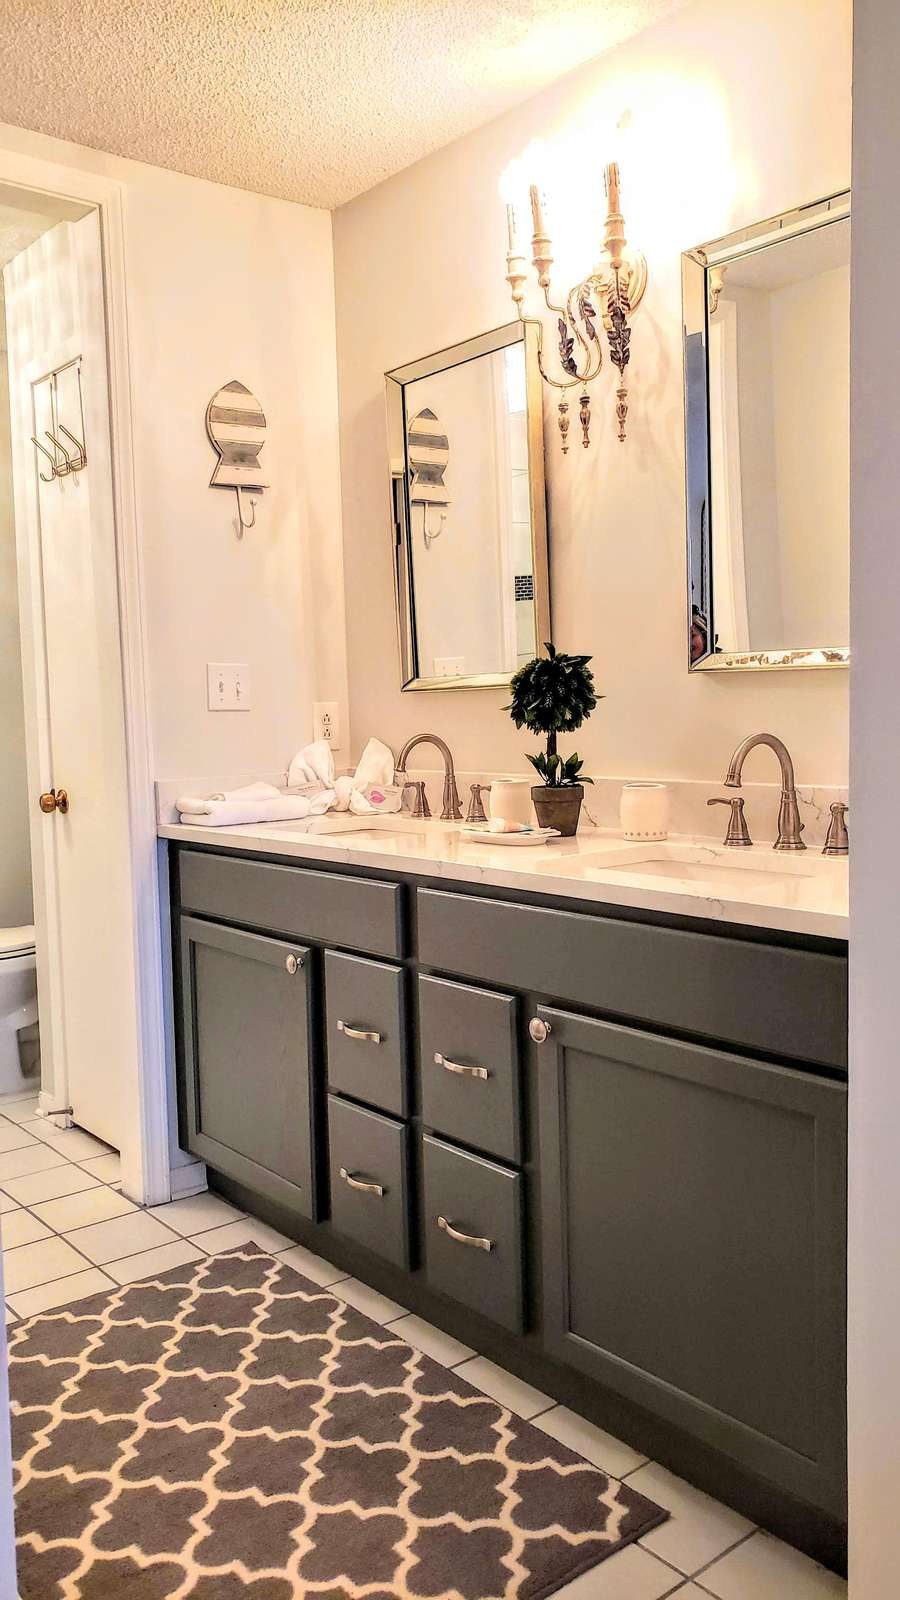 Beautifully appointed double sink vanity in Master Bath plus large walk-in closet